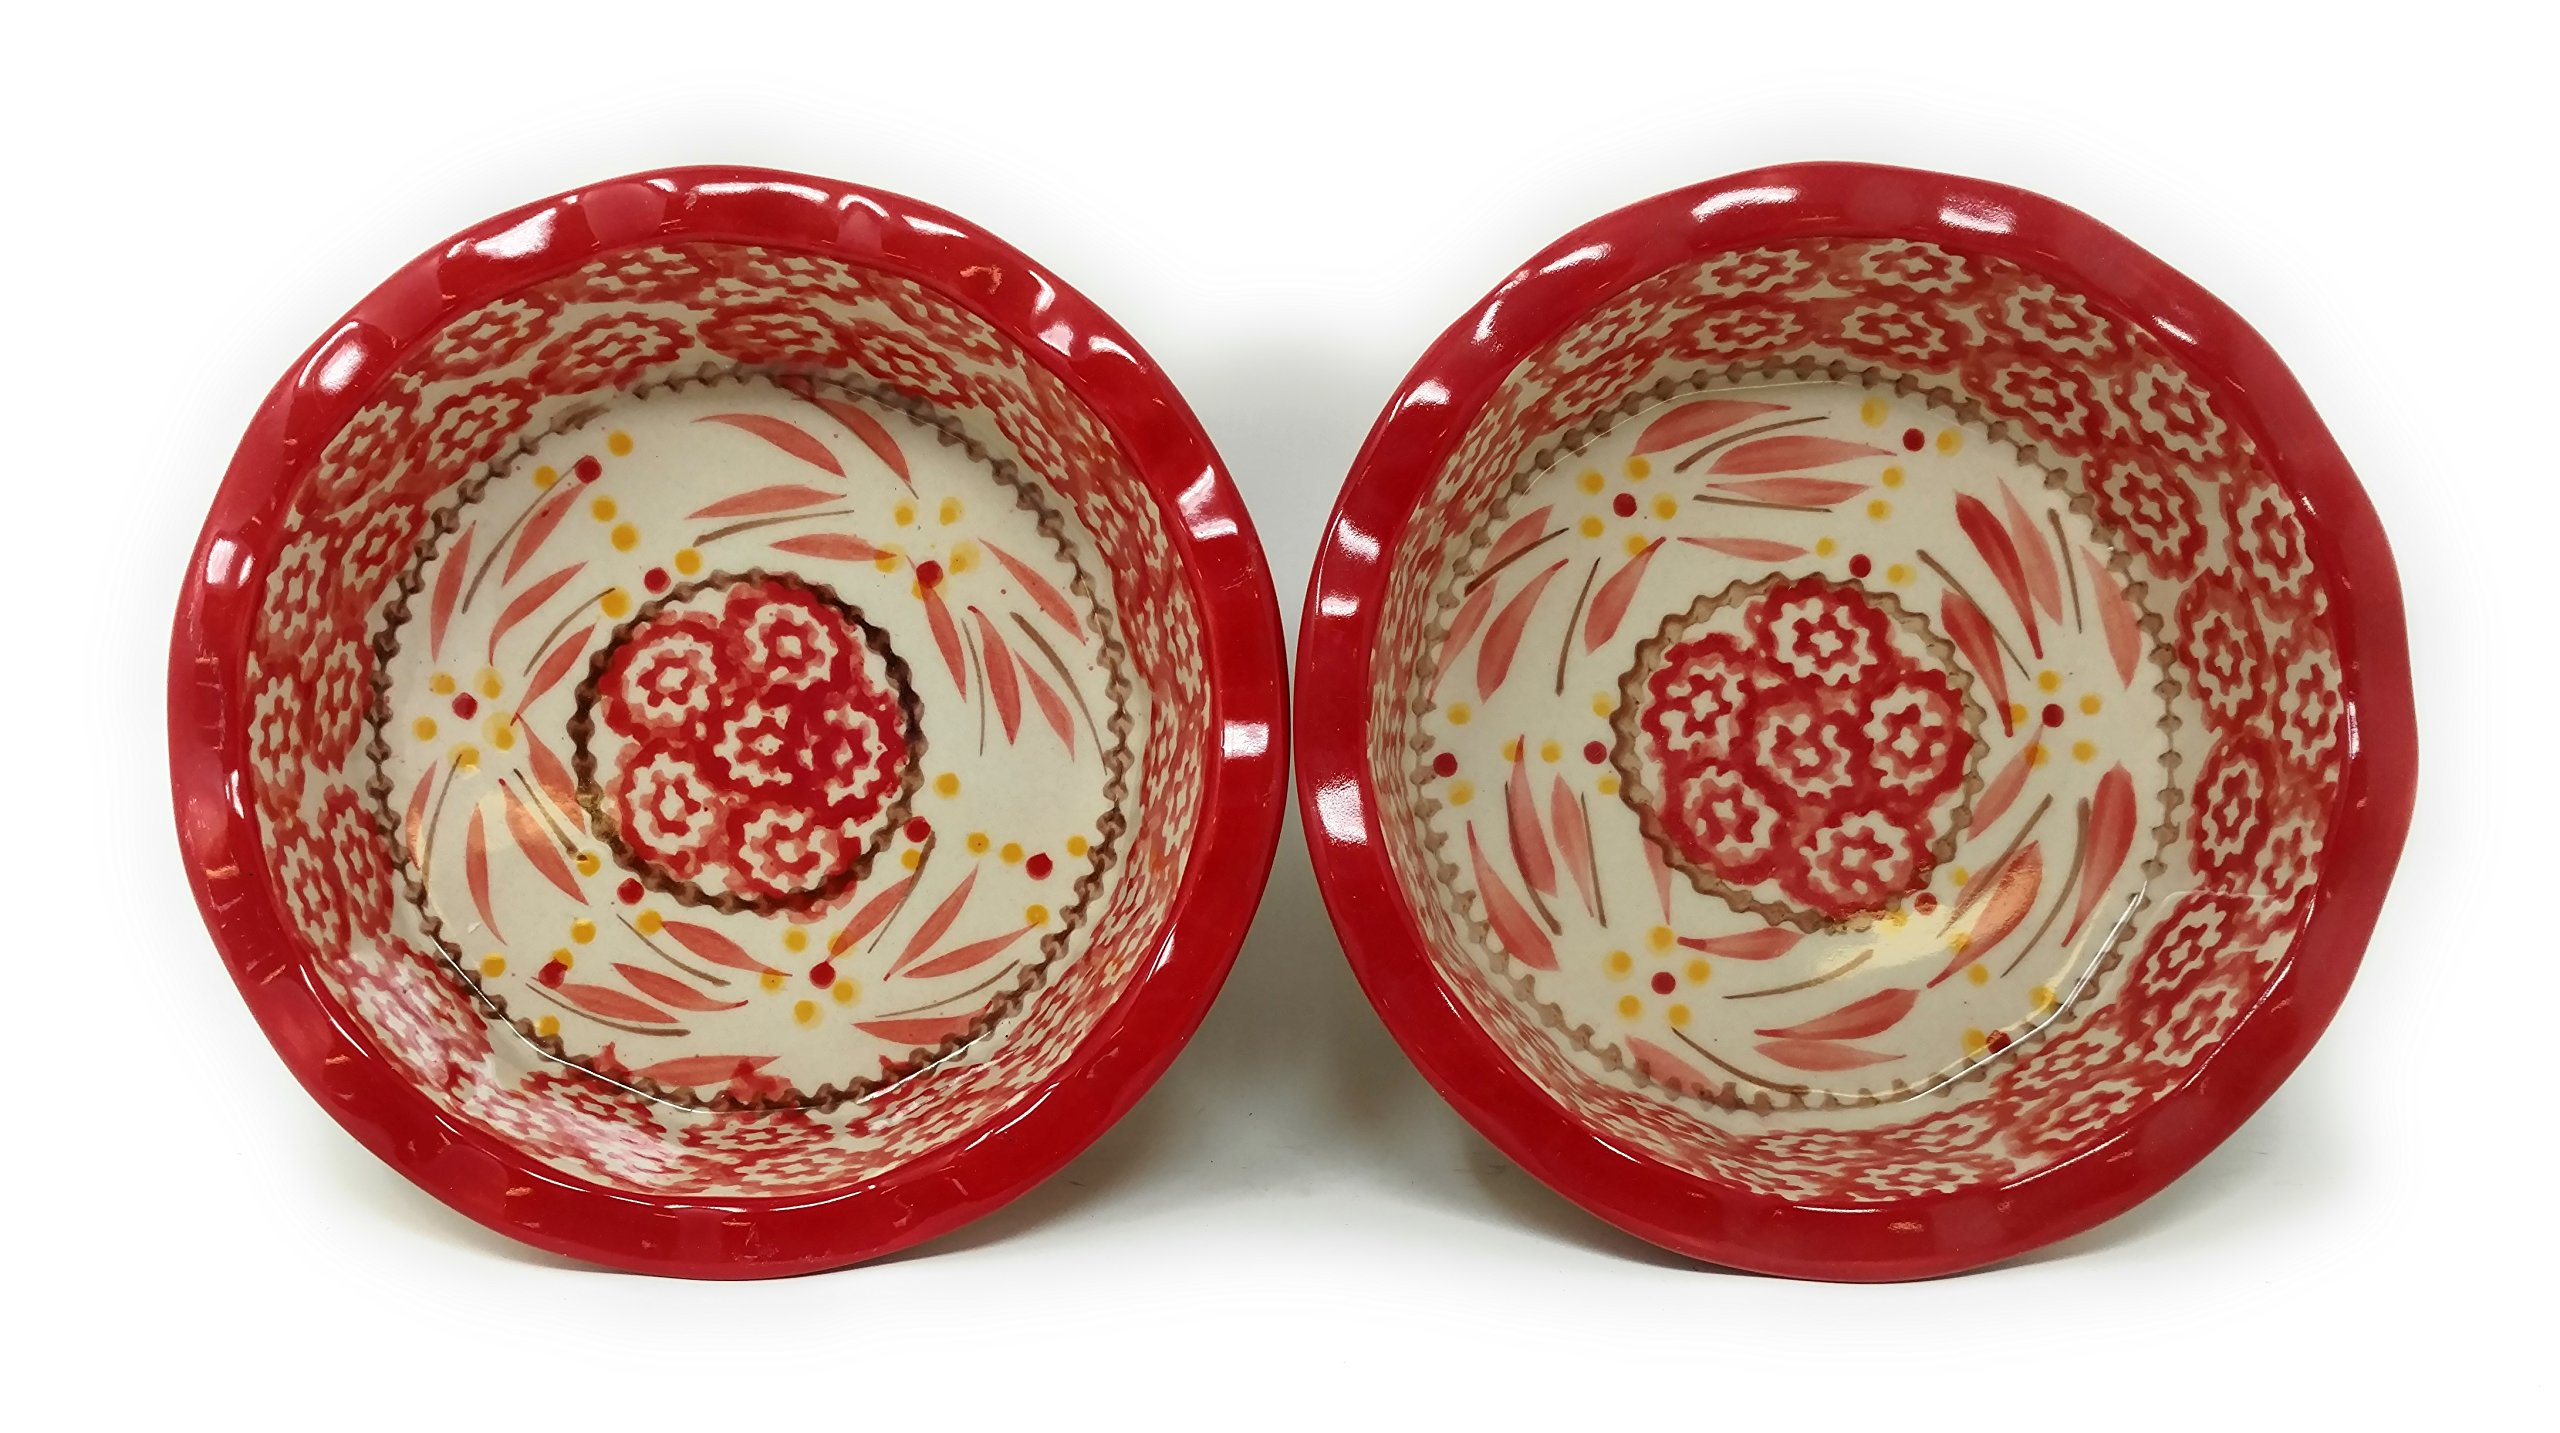 Temp-tations Set of 2 Mini Pie Pans, Deep Dish 5.75'' x 1.75'' each - Stoneware (Old World Red) by Temptations (Image #4)